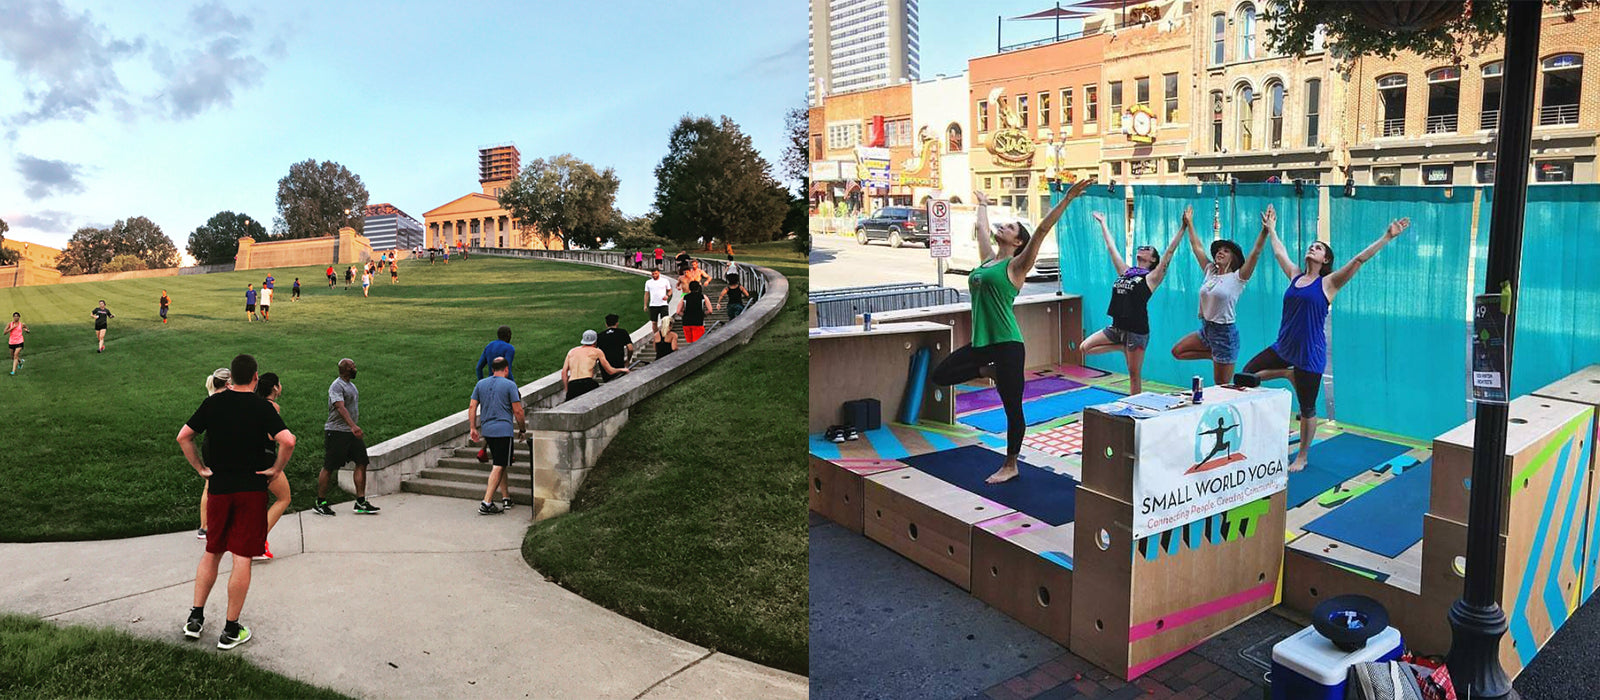 The Best Free Workouts in Nashville